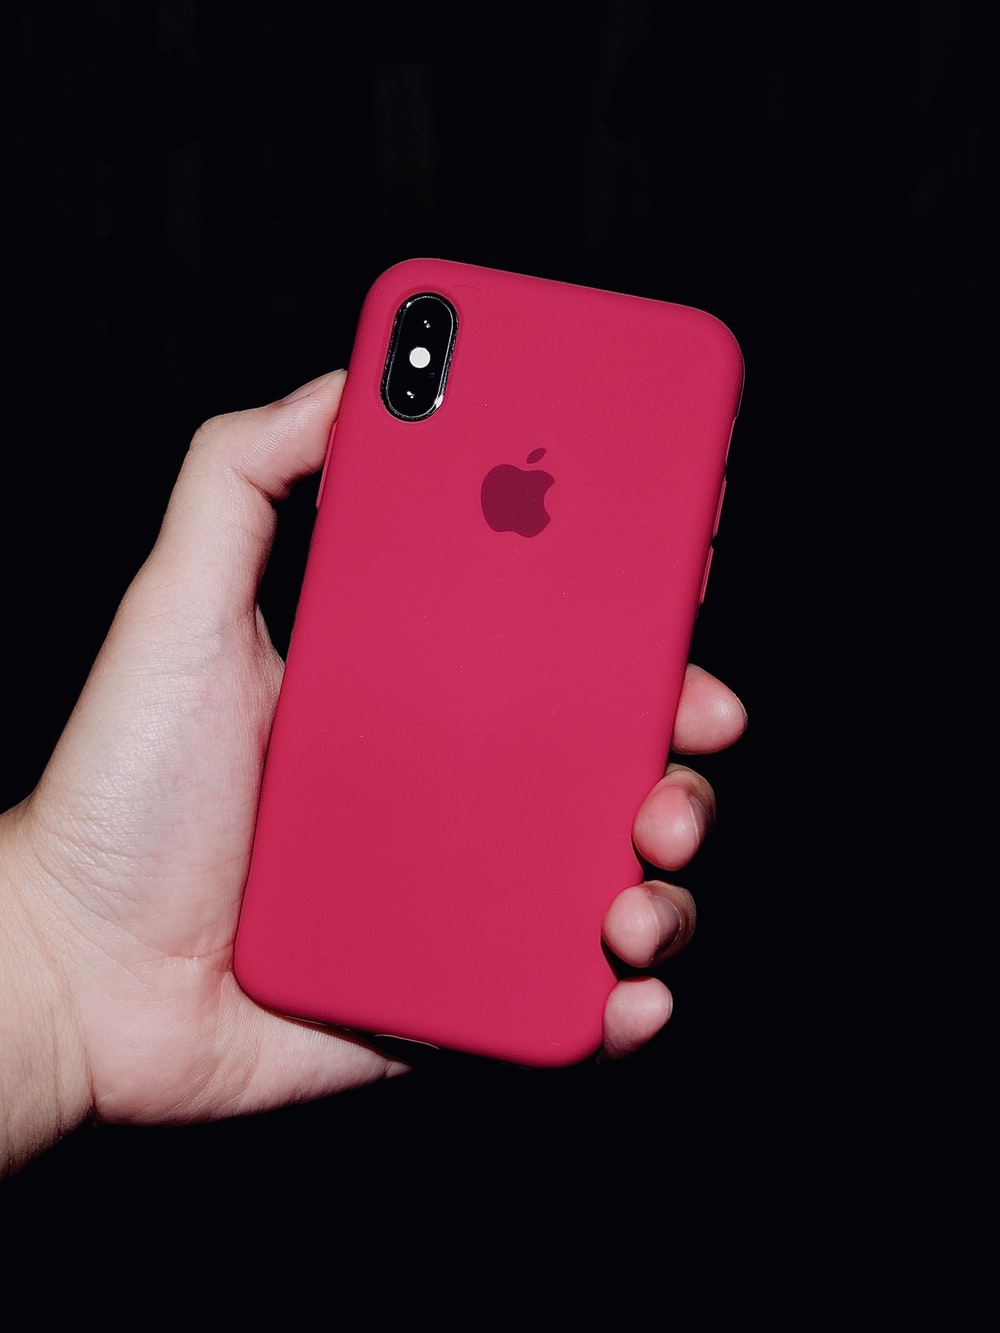 person holding iphone with red case